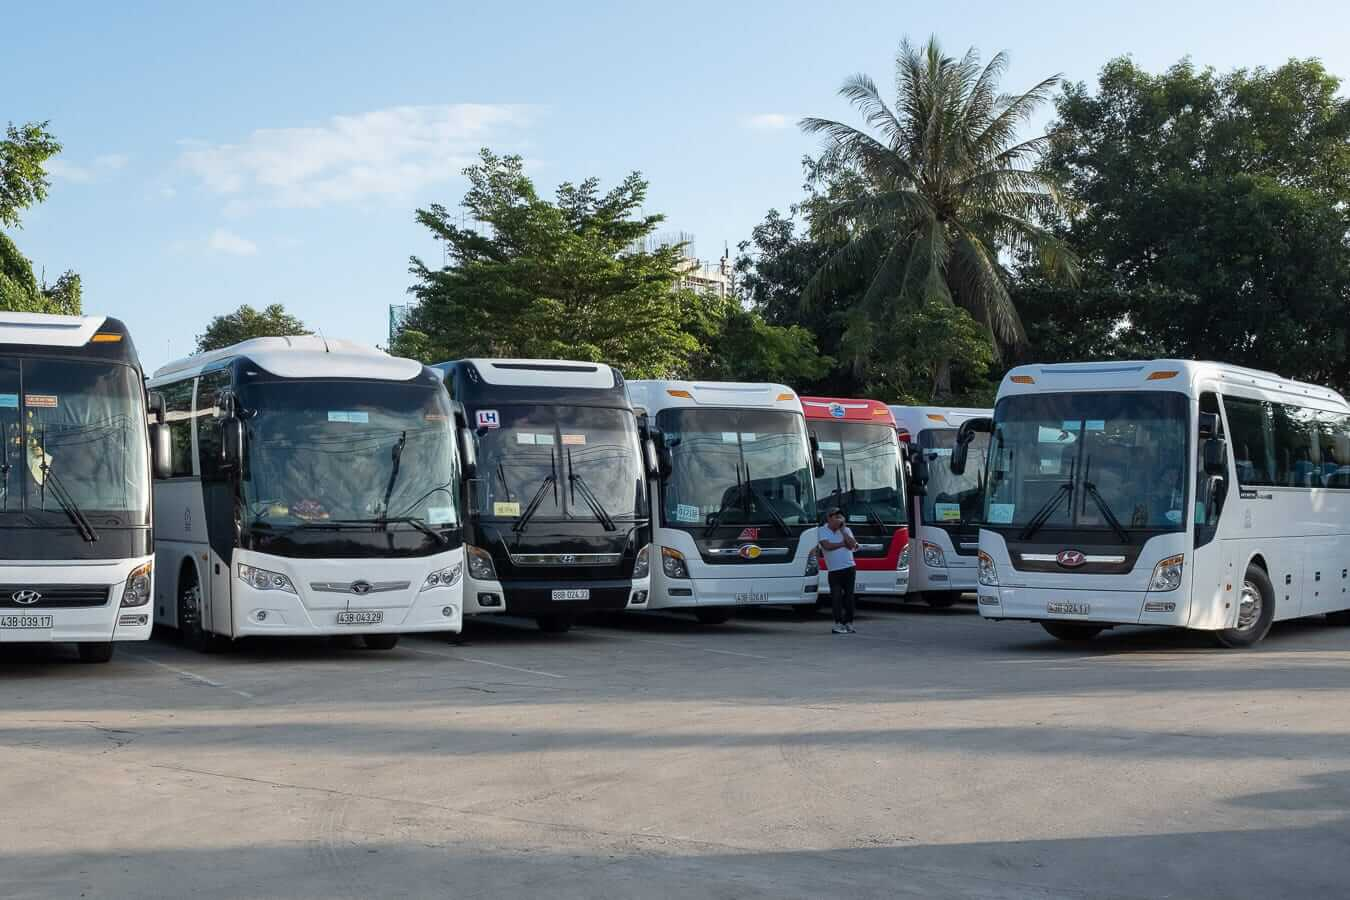 Busses in Hoi An